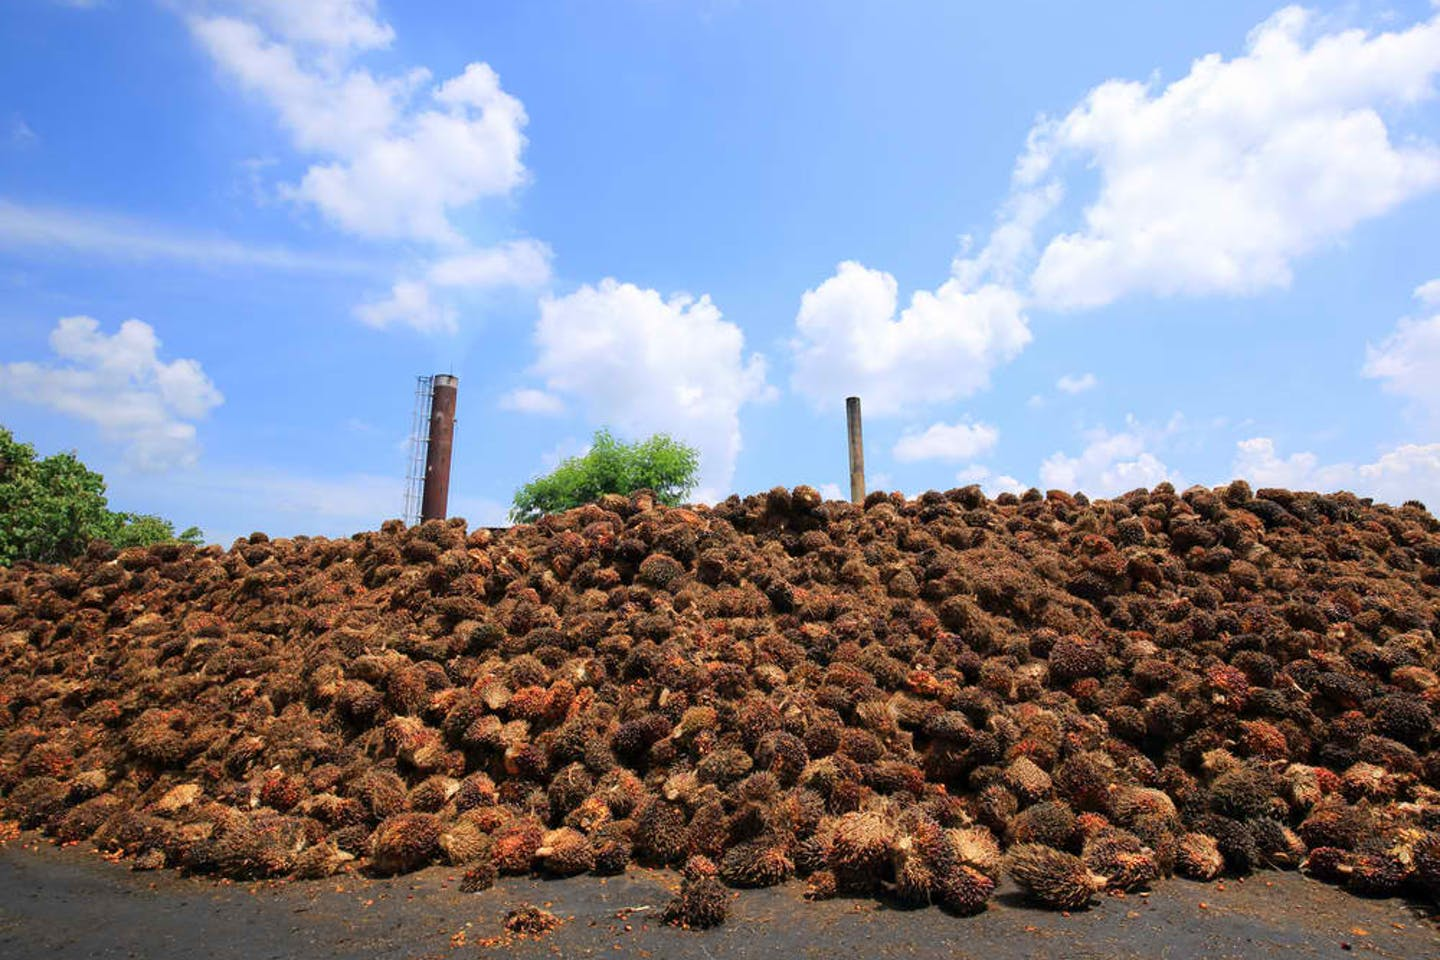 palm oil fruit bunches fodder